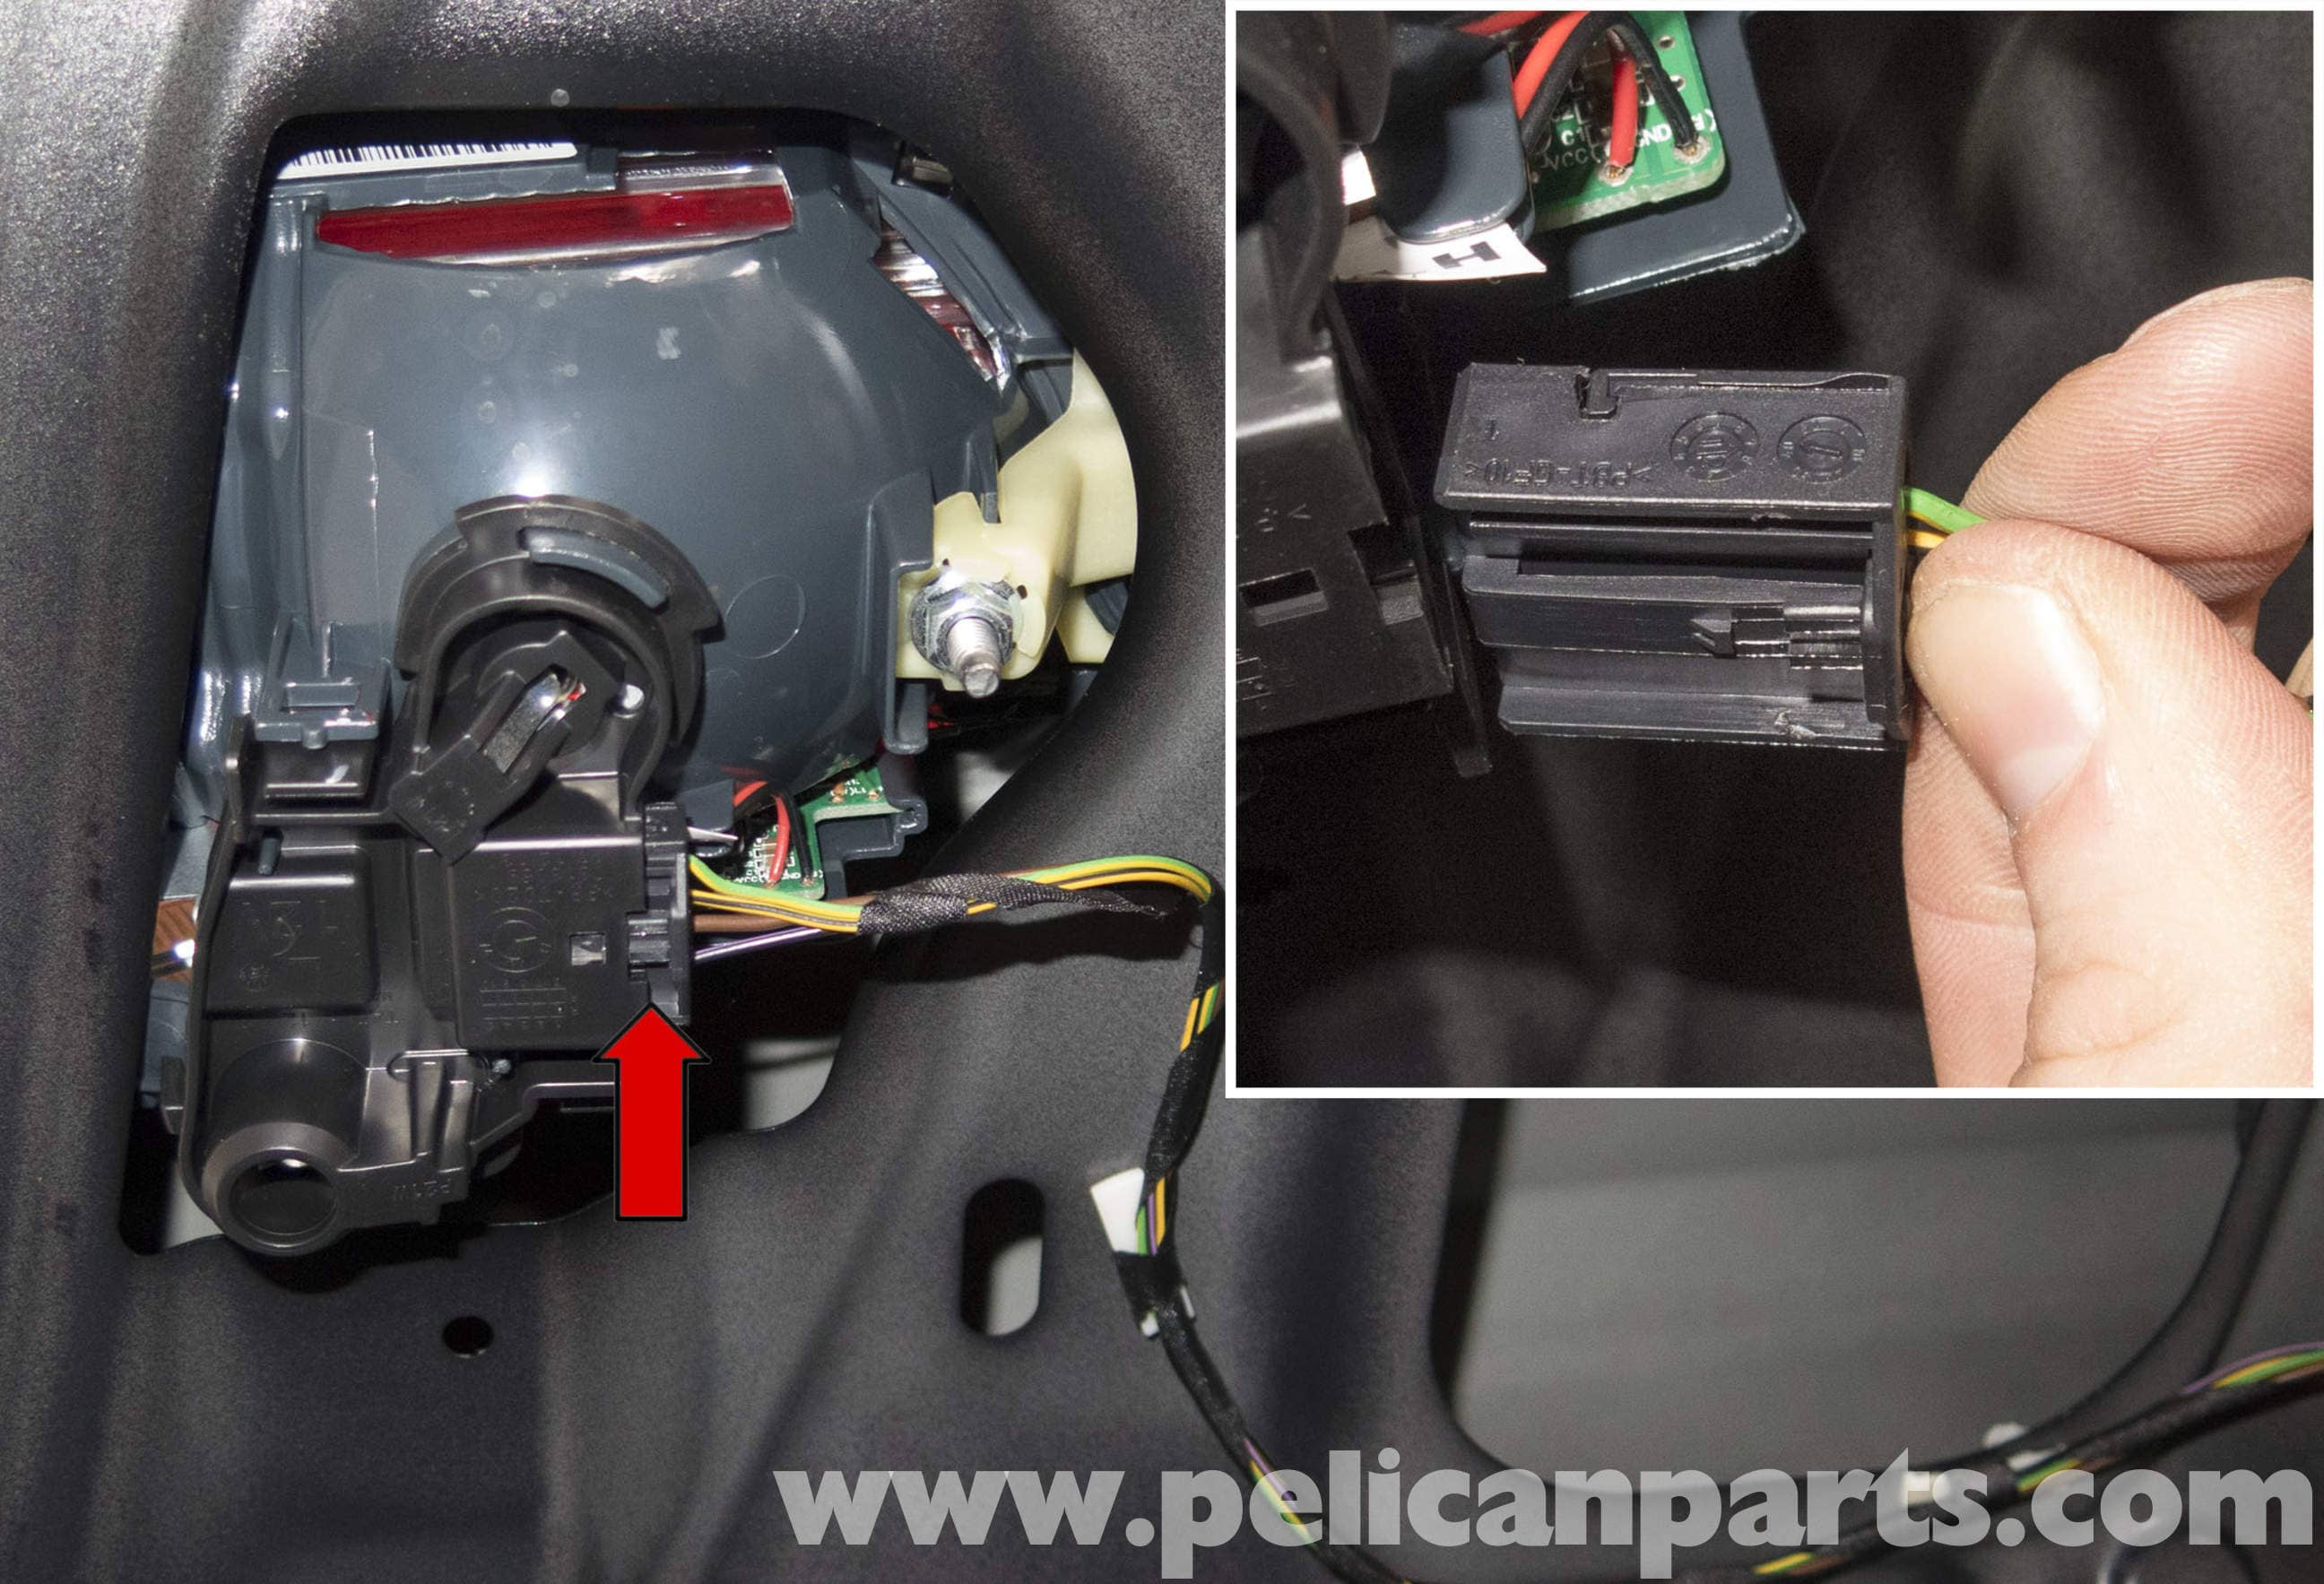 Terrific Pelican Technical Article Bmw F30 3 Series Tail Light Replacement Wiring Digital Resources Funapmognl